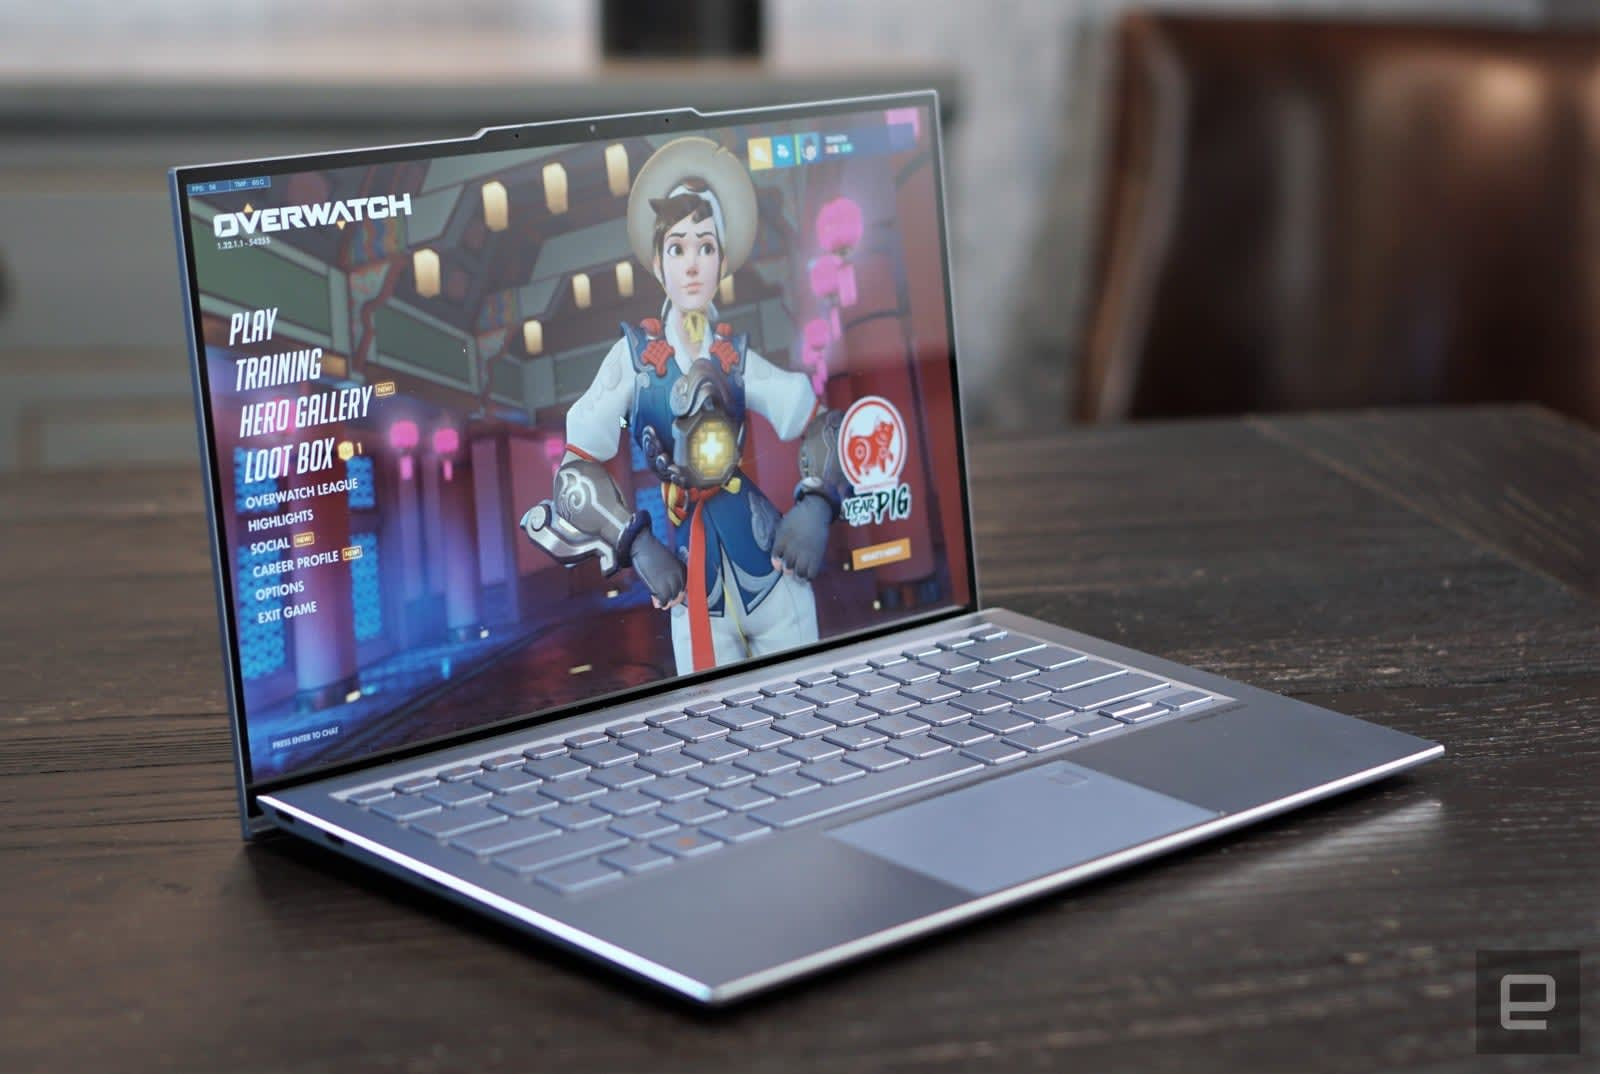 ASUS ZenBook S13 review: A gamer's ultraportable